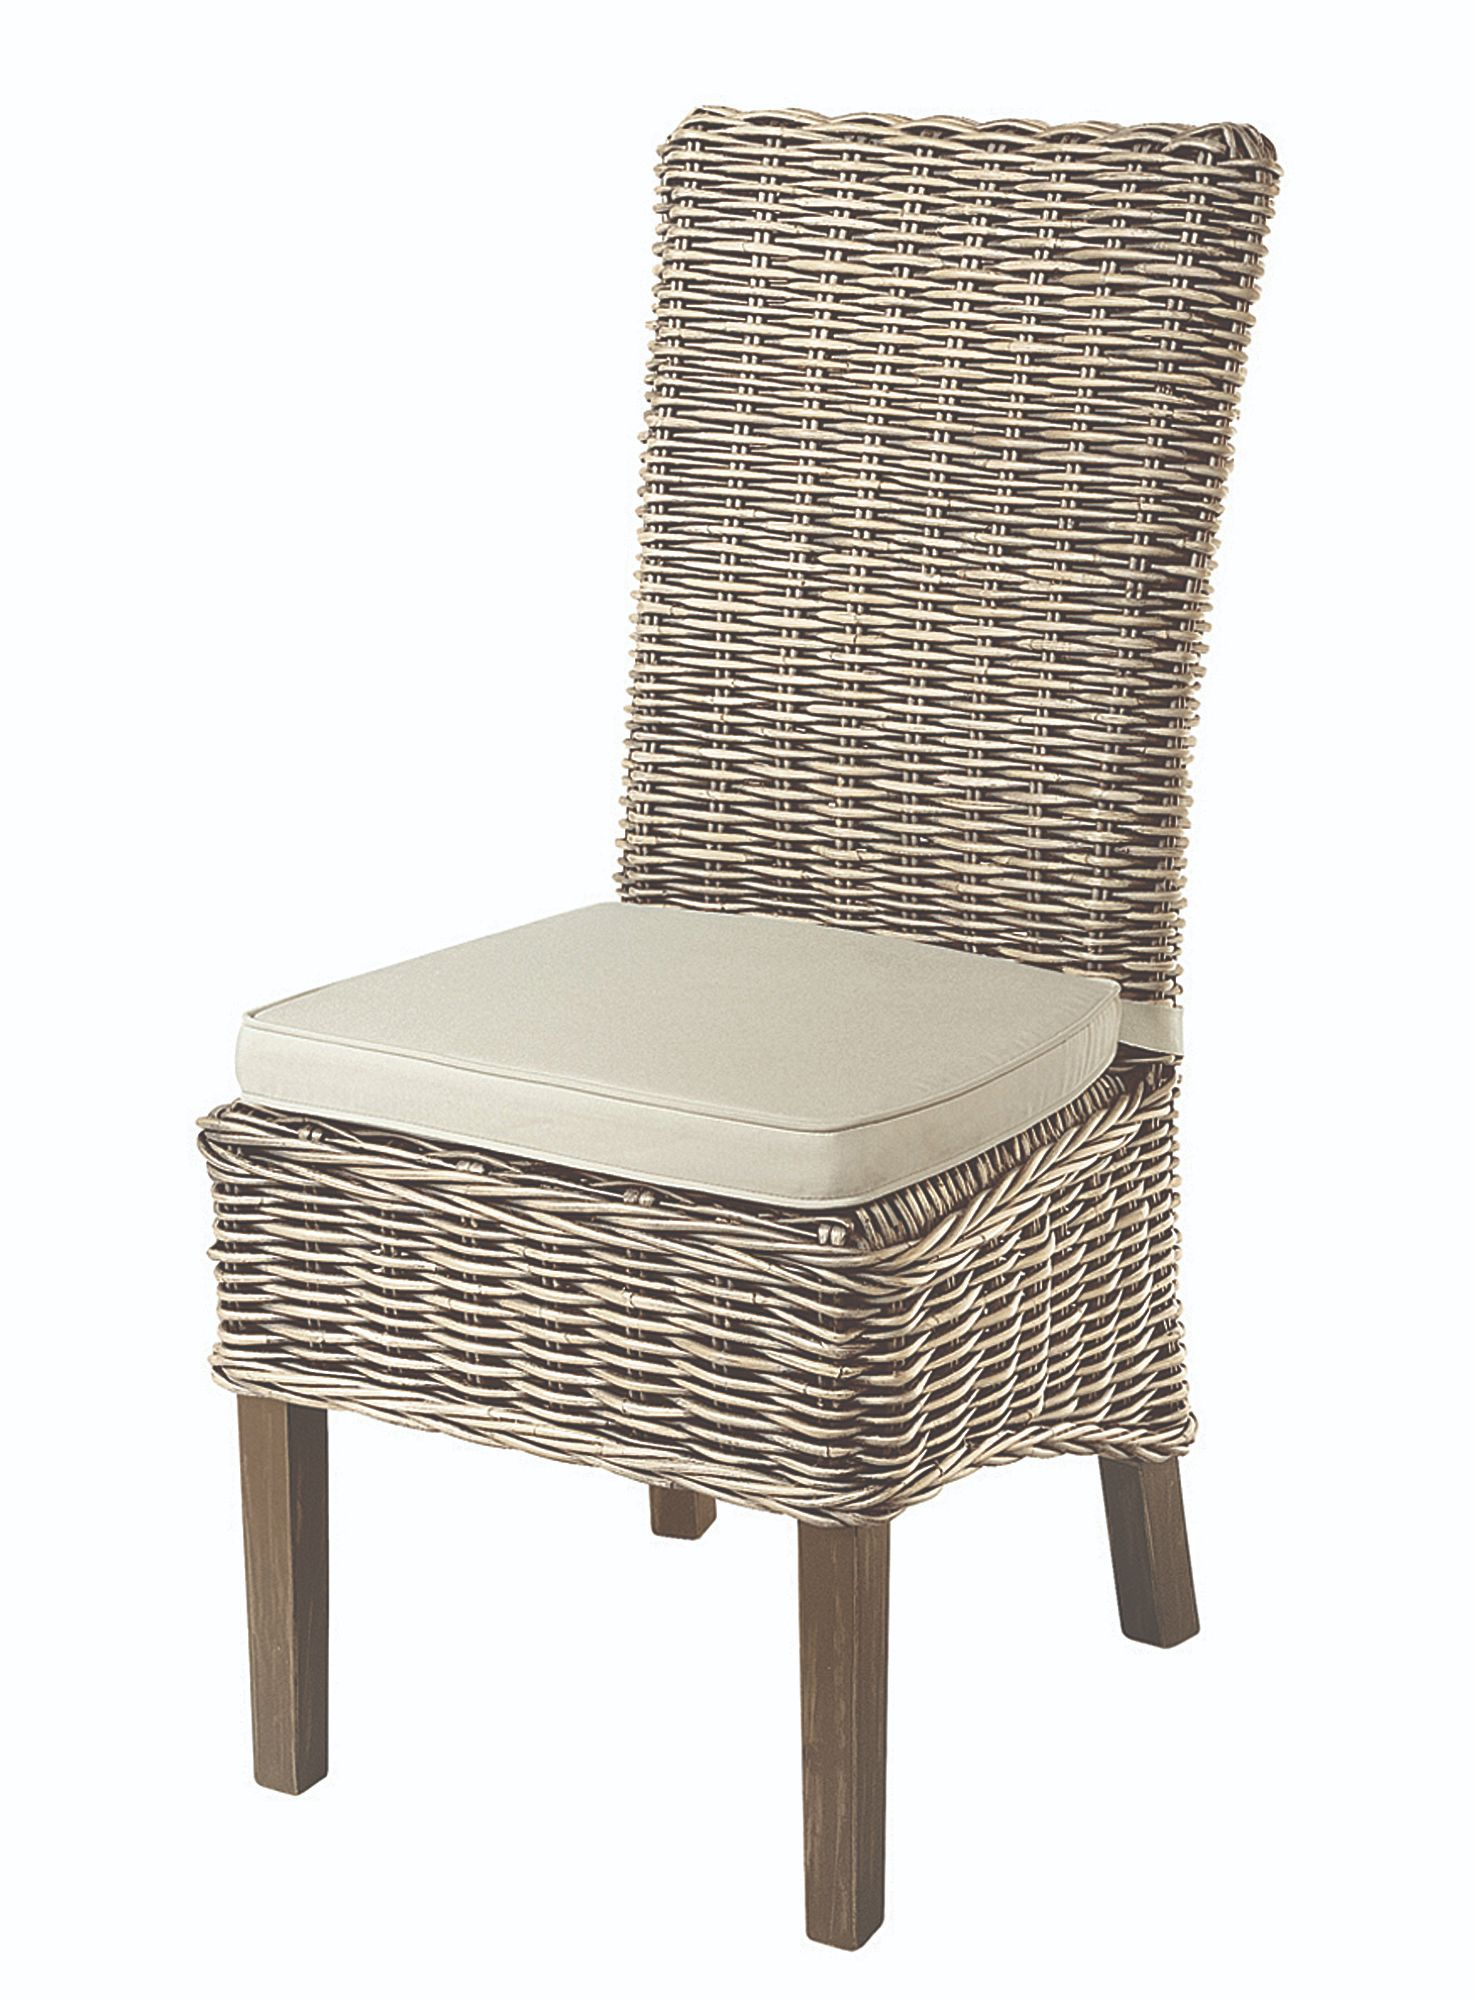 MAYA DINING CHAIR Grey Wash Rattan